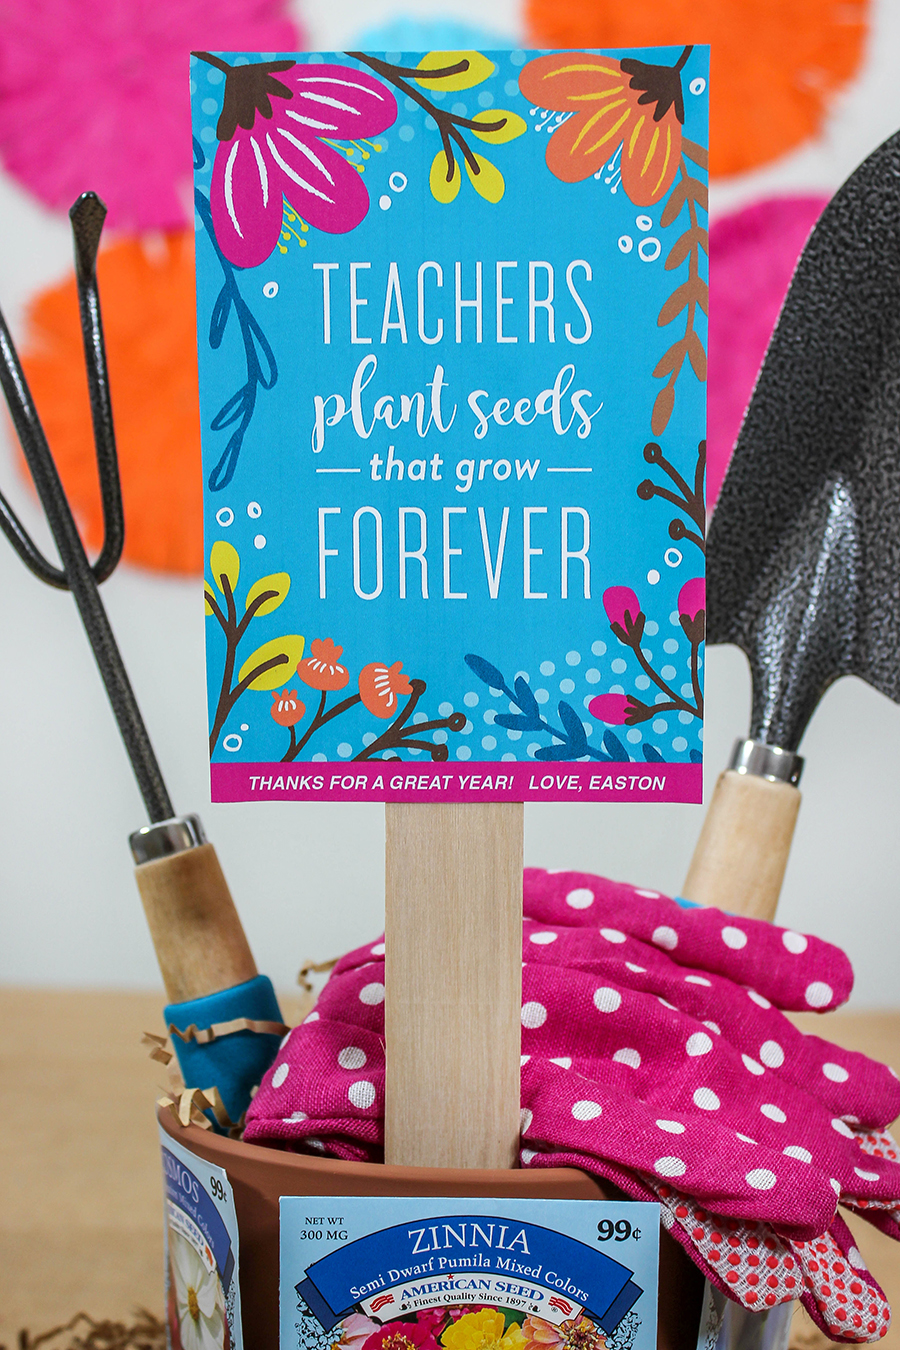 teachers plant seeds that grow forever, gardening teacher gift, teacher appreciation, teachers plant seeds, teacher gift, thank a teacher, gardening gift, gardening, free printable, Just Add Confetti, flowers, seeds, end of year gift,